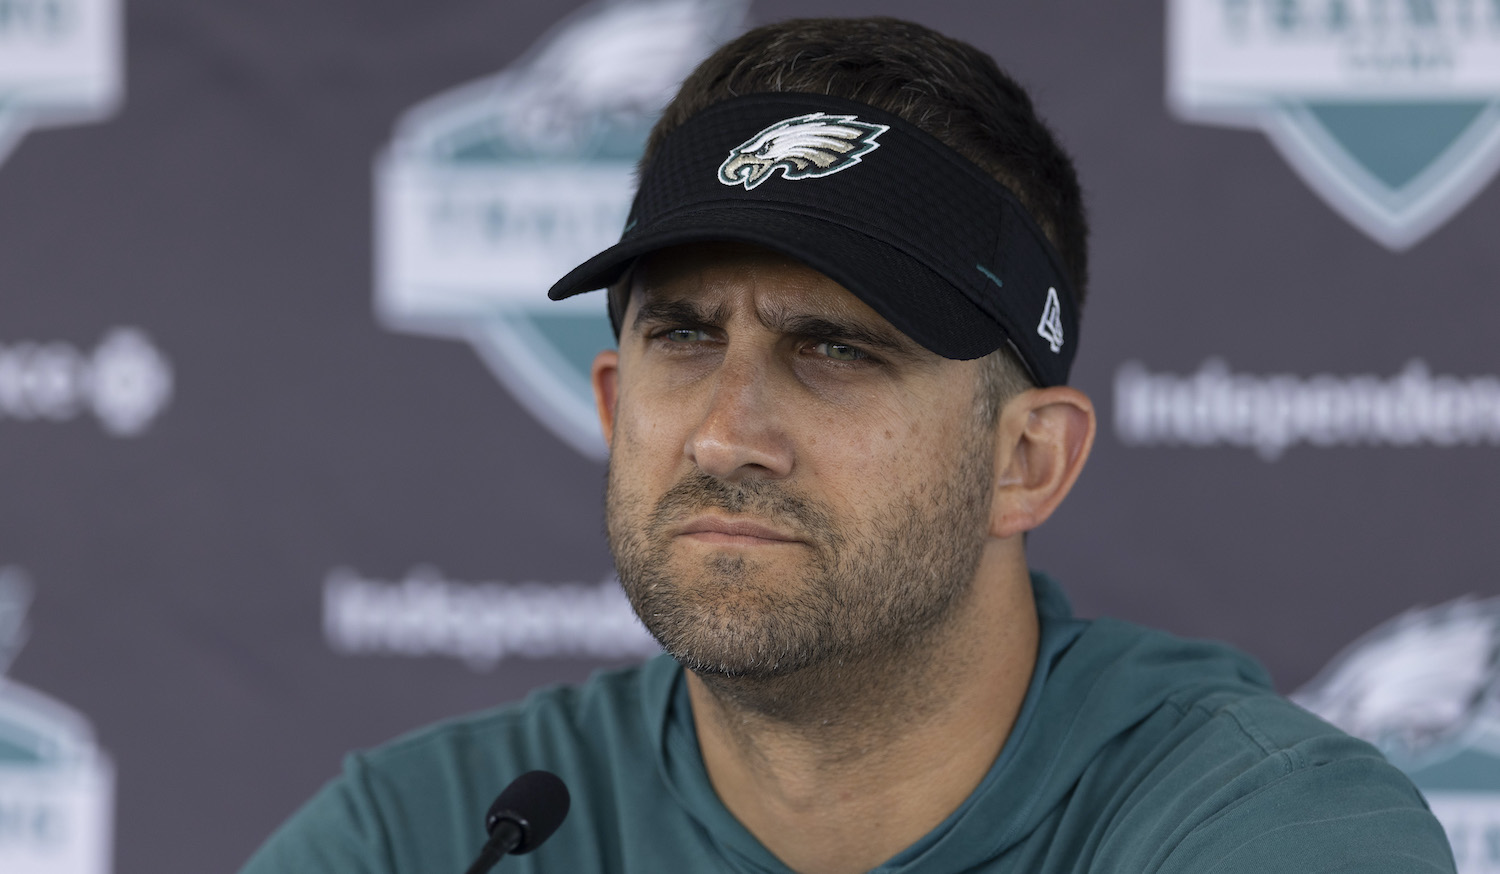 PHILADELPHIA, PA - JULY 28: Head coach Nick Sirianni of the Philadelphia Eagles talks to the media during training camp at the NovaCare Complex on July 28, 2021 in Philadelphia, Pennsylvania. (Photo by Mitchell Leff/Getty Images)